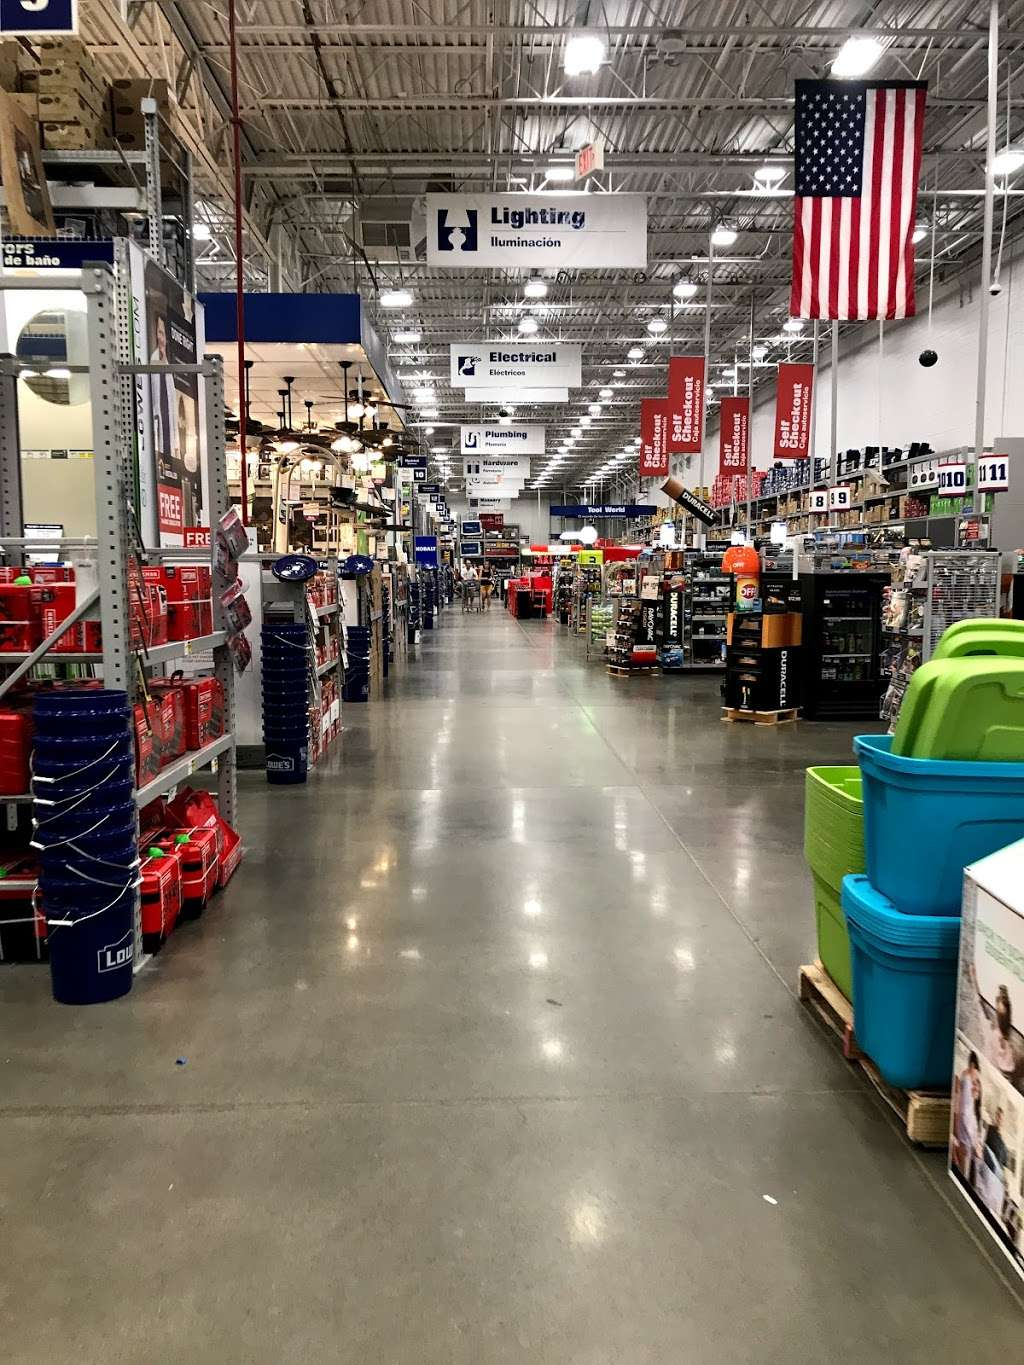 Lowes Home Improvement - hardware store  | Photo 9 of 9 | Address: 1751 E Monte Vista Ave, Vacaville, CA 95688, USA | Phone: (707) 455-4400